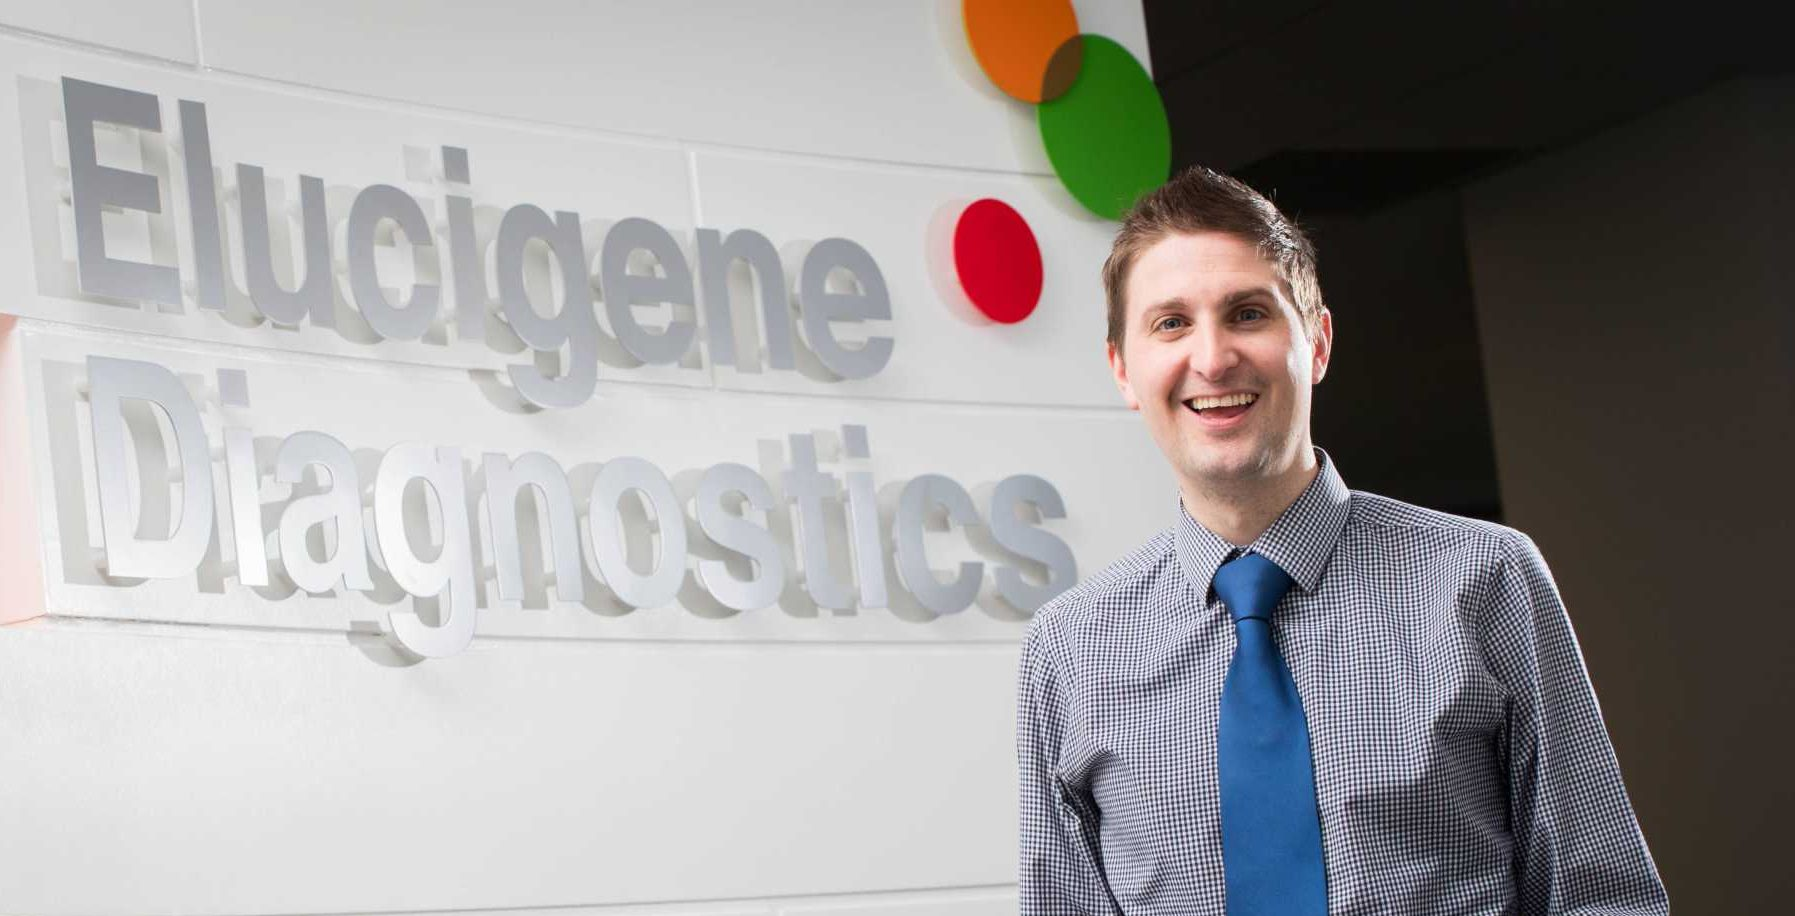 Mark Street-Docherty is pictured - image courtesy of Elucigene Diagnostics.